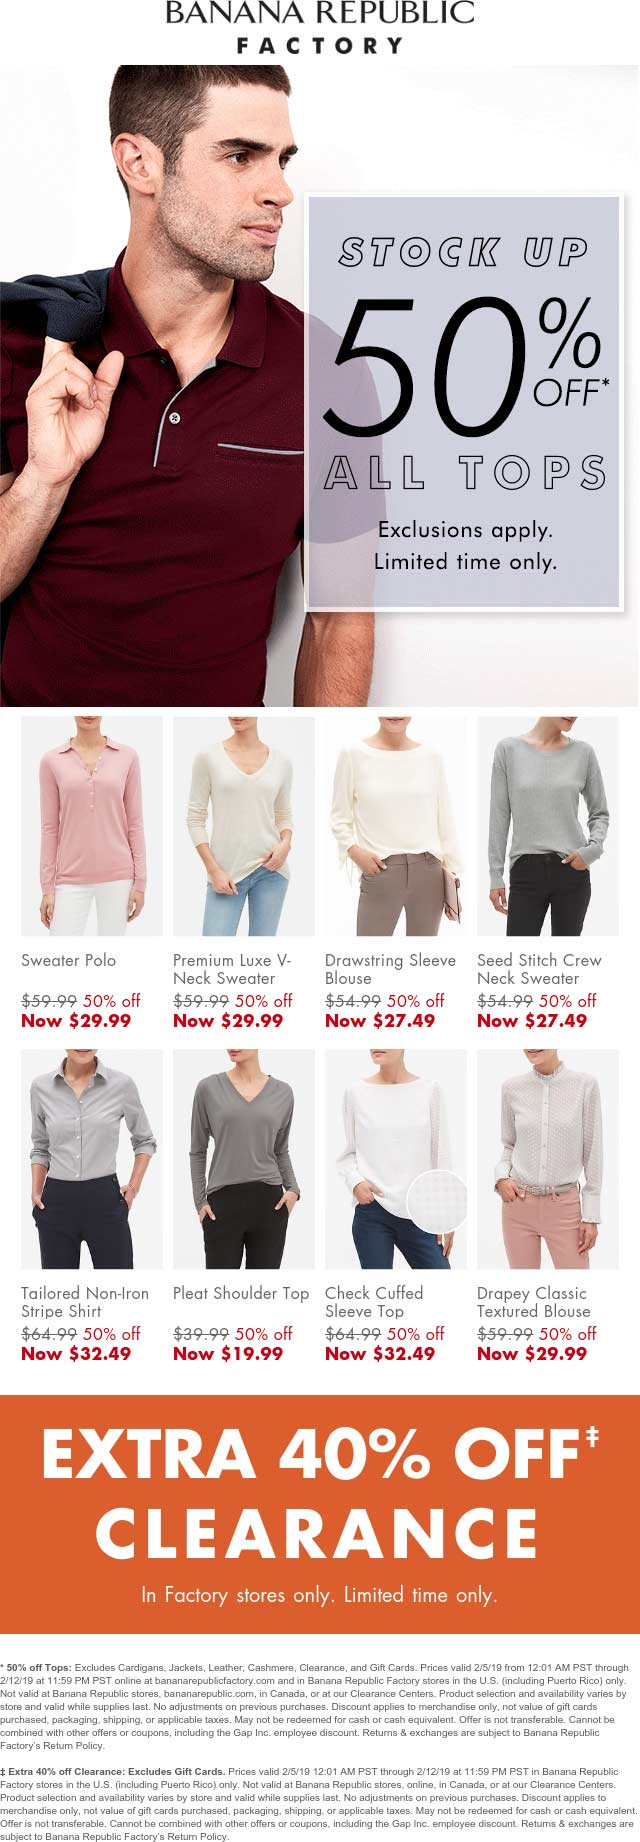 Banana Republic Factory Coupon June 2019 50% off tops & 40% off clearance at Banana Republic Factory, ditto online